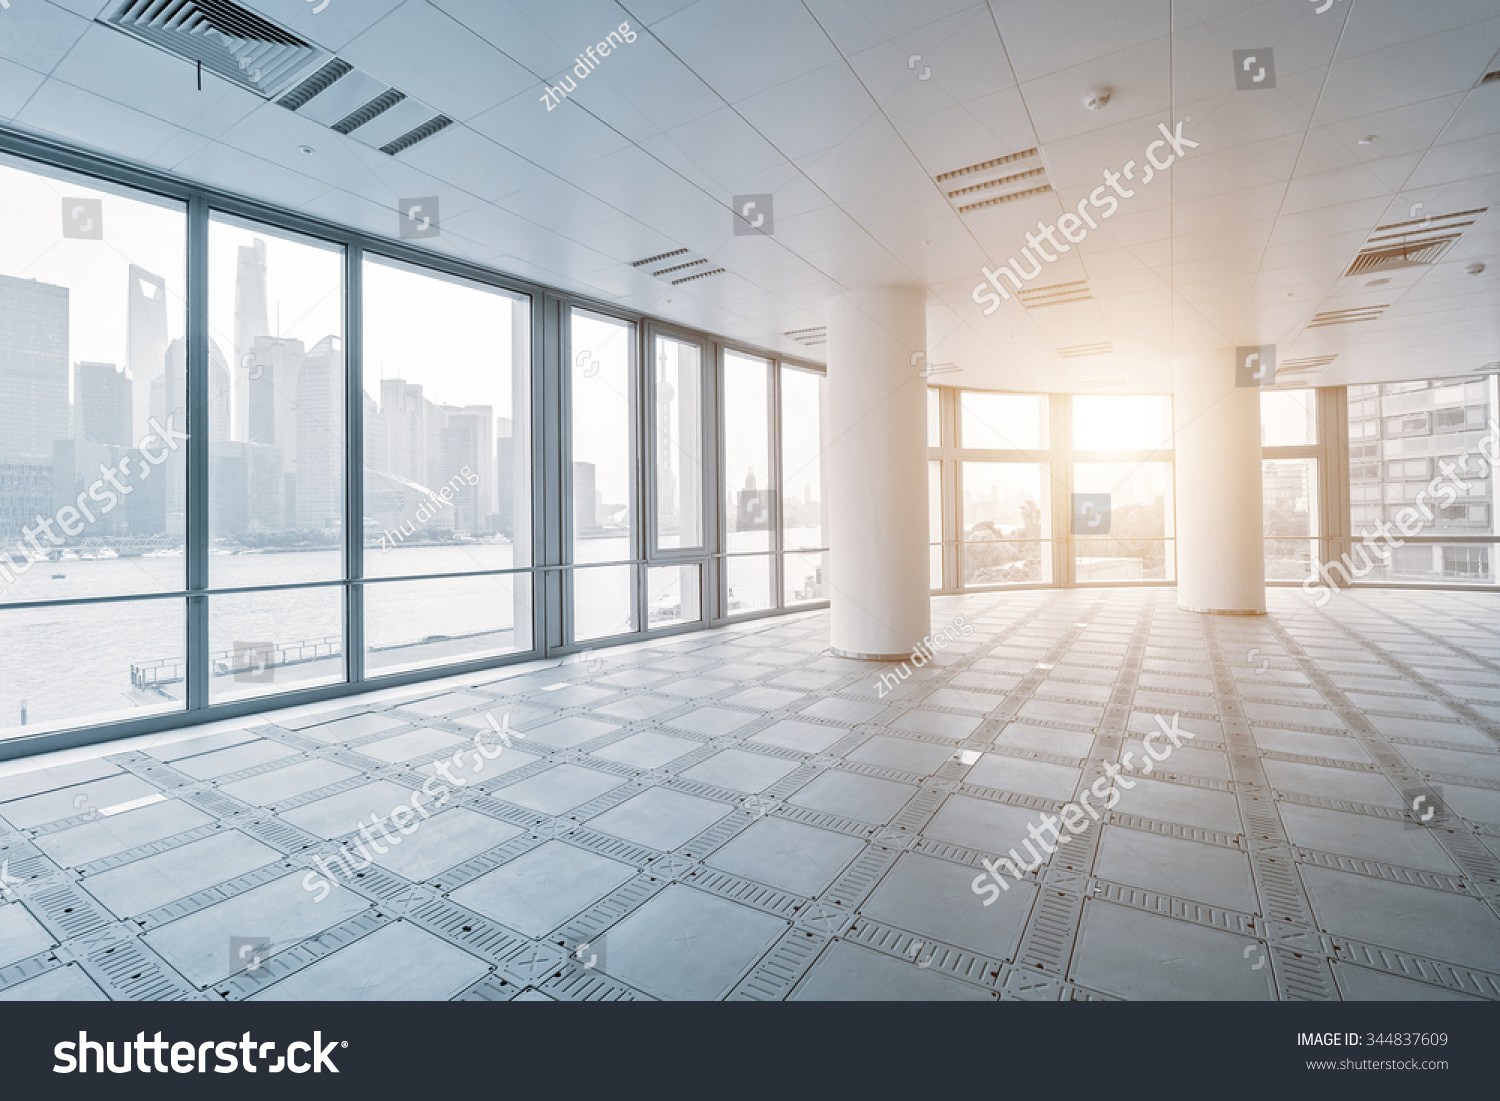 Empty Office Room Modern Office Buildings Stock Photo